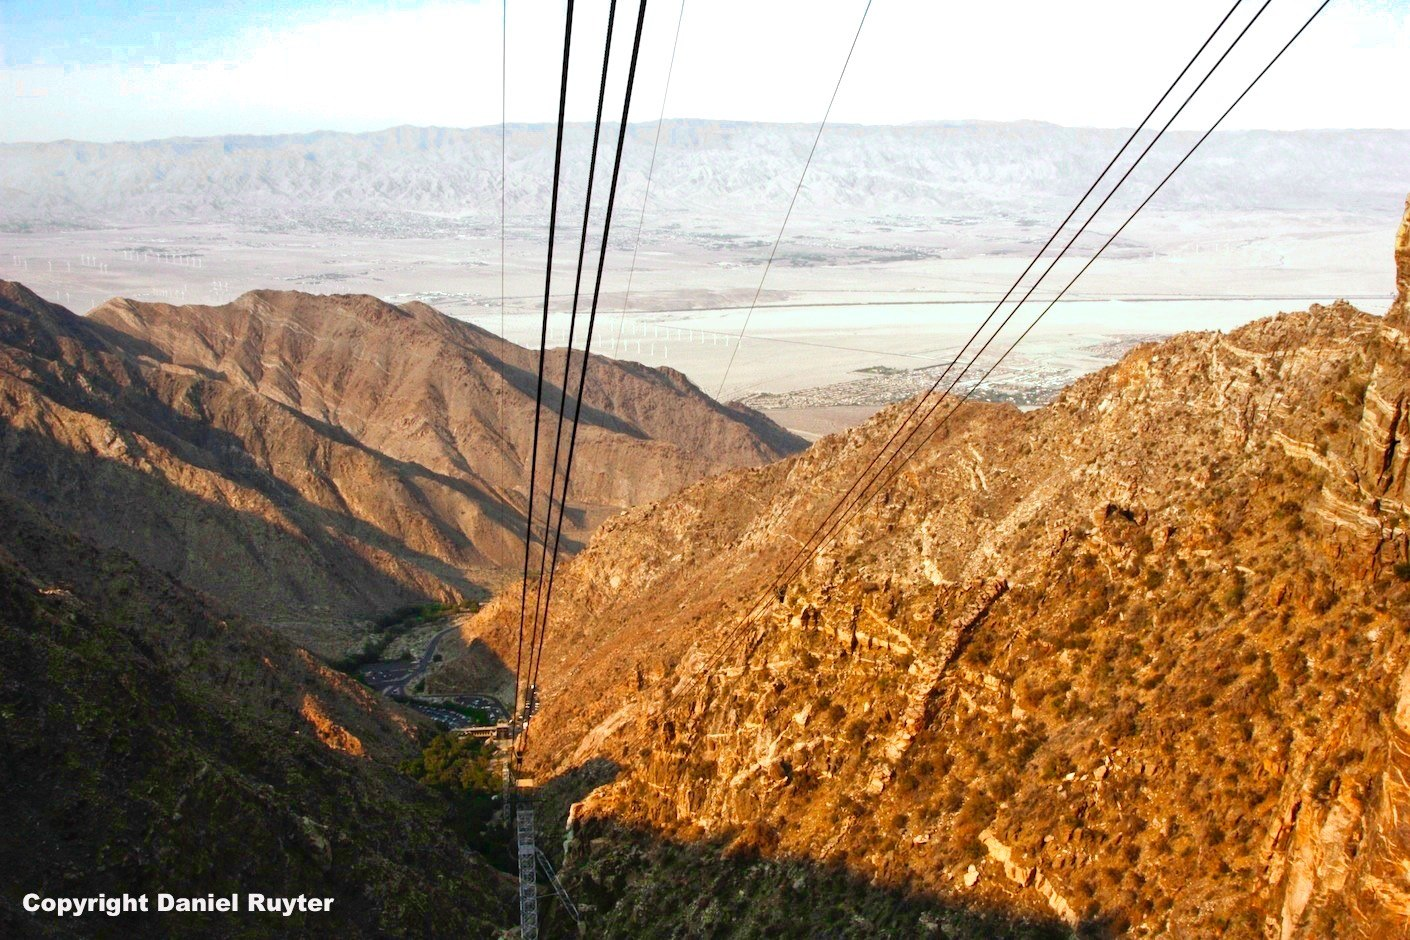 Palm Springs Aerial Tram Review - View on the Way Up